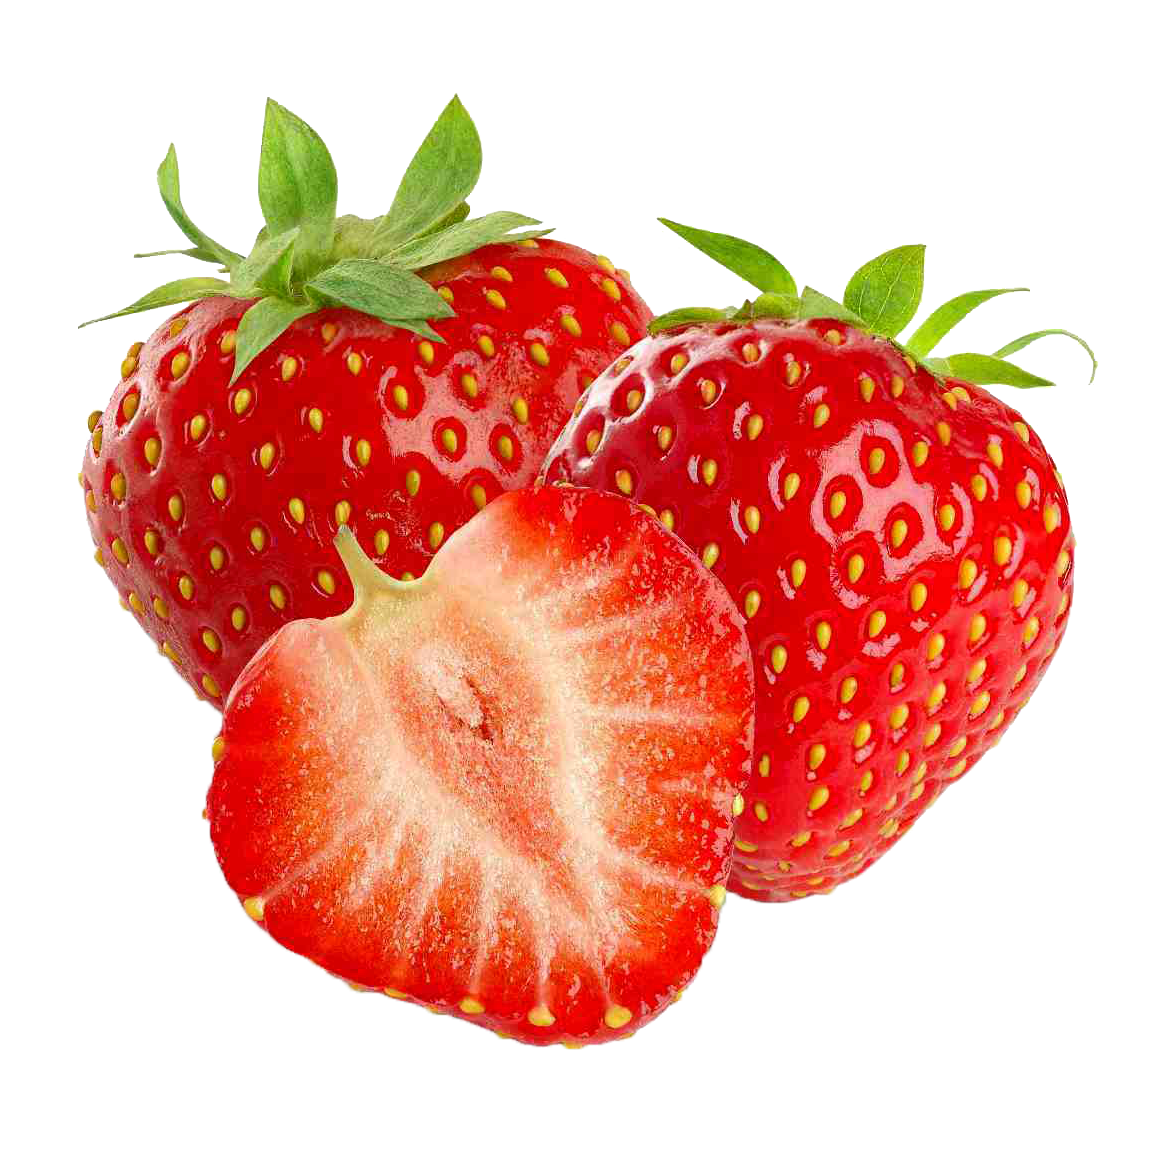 Fruit png images. Strawberry free icons and